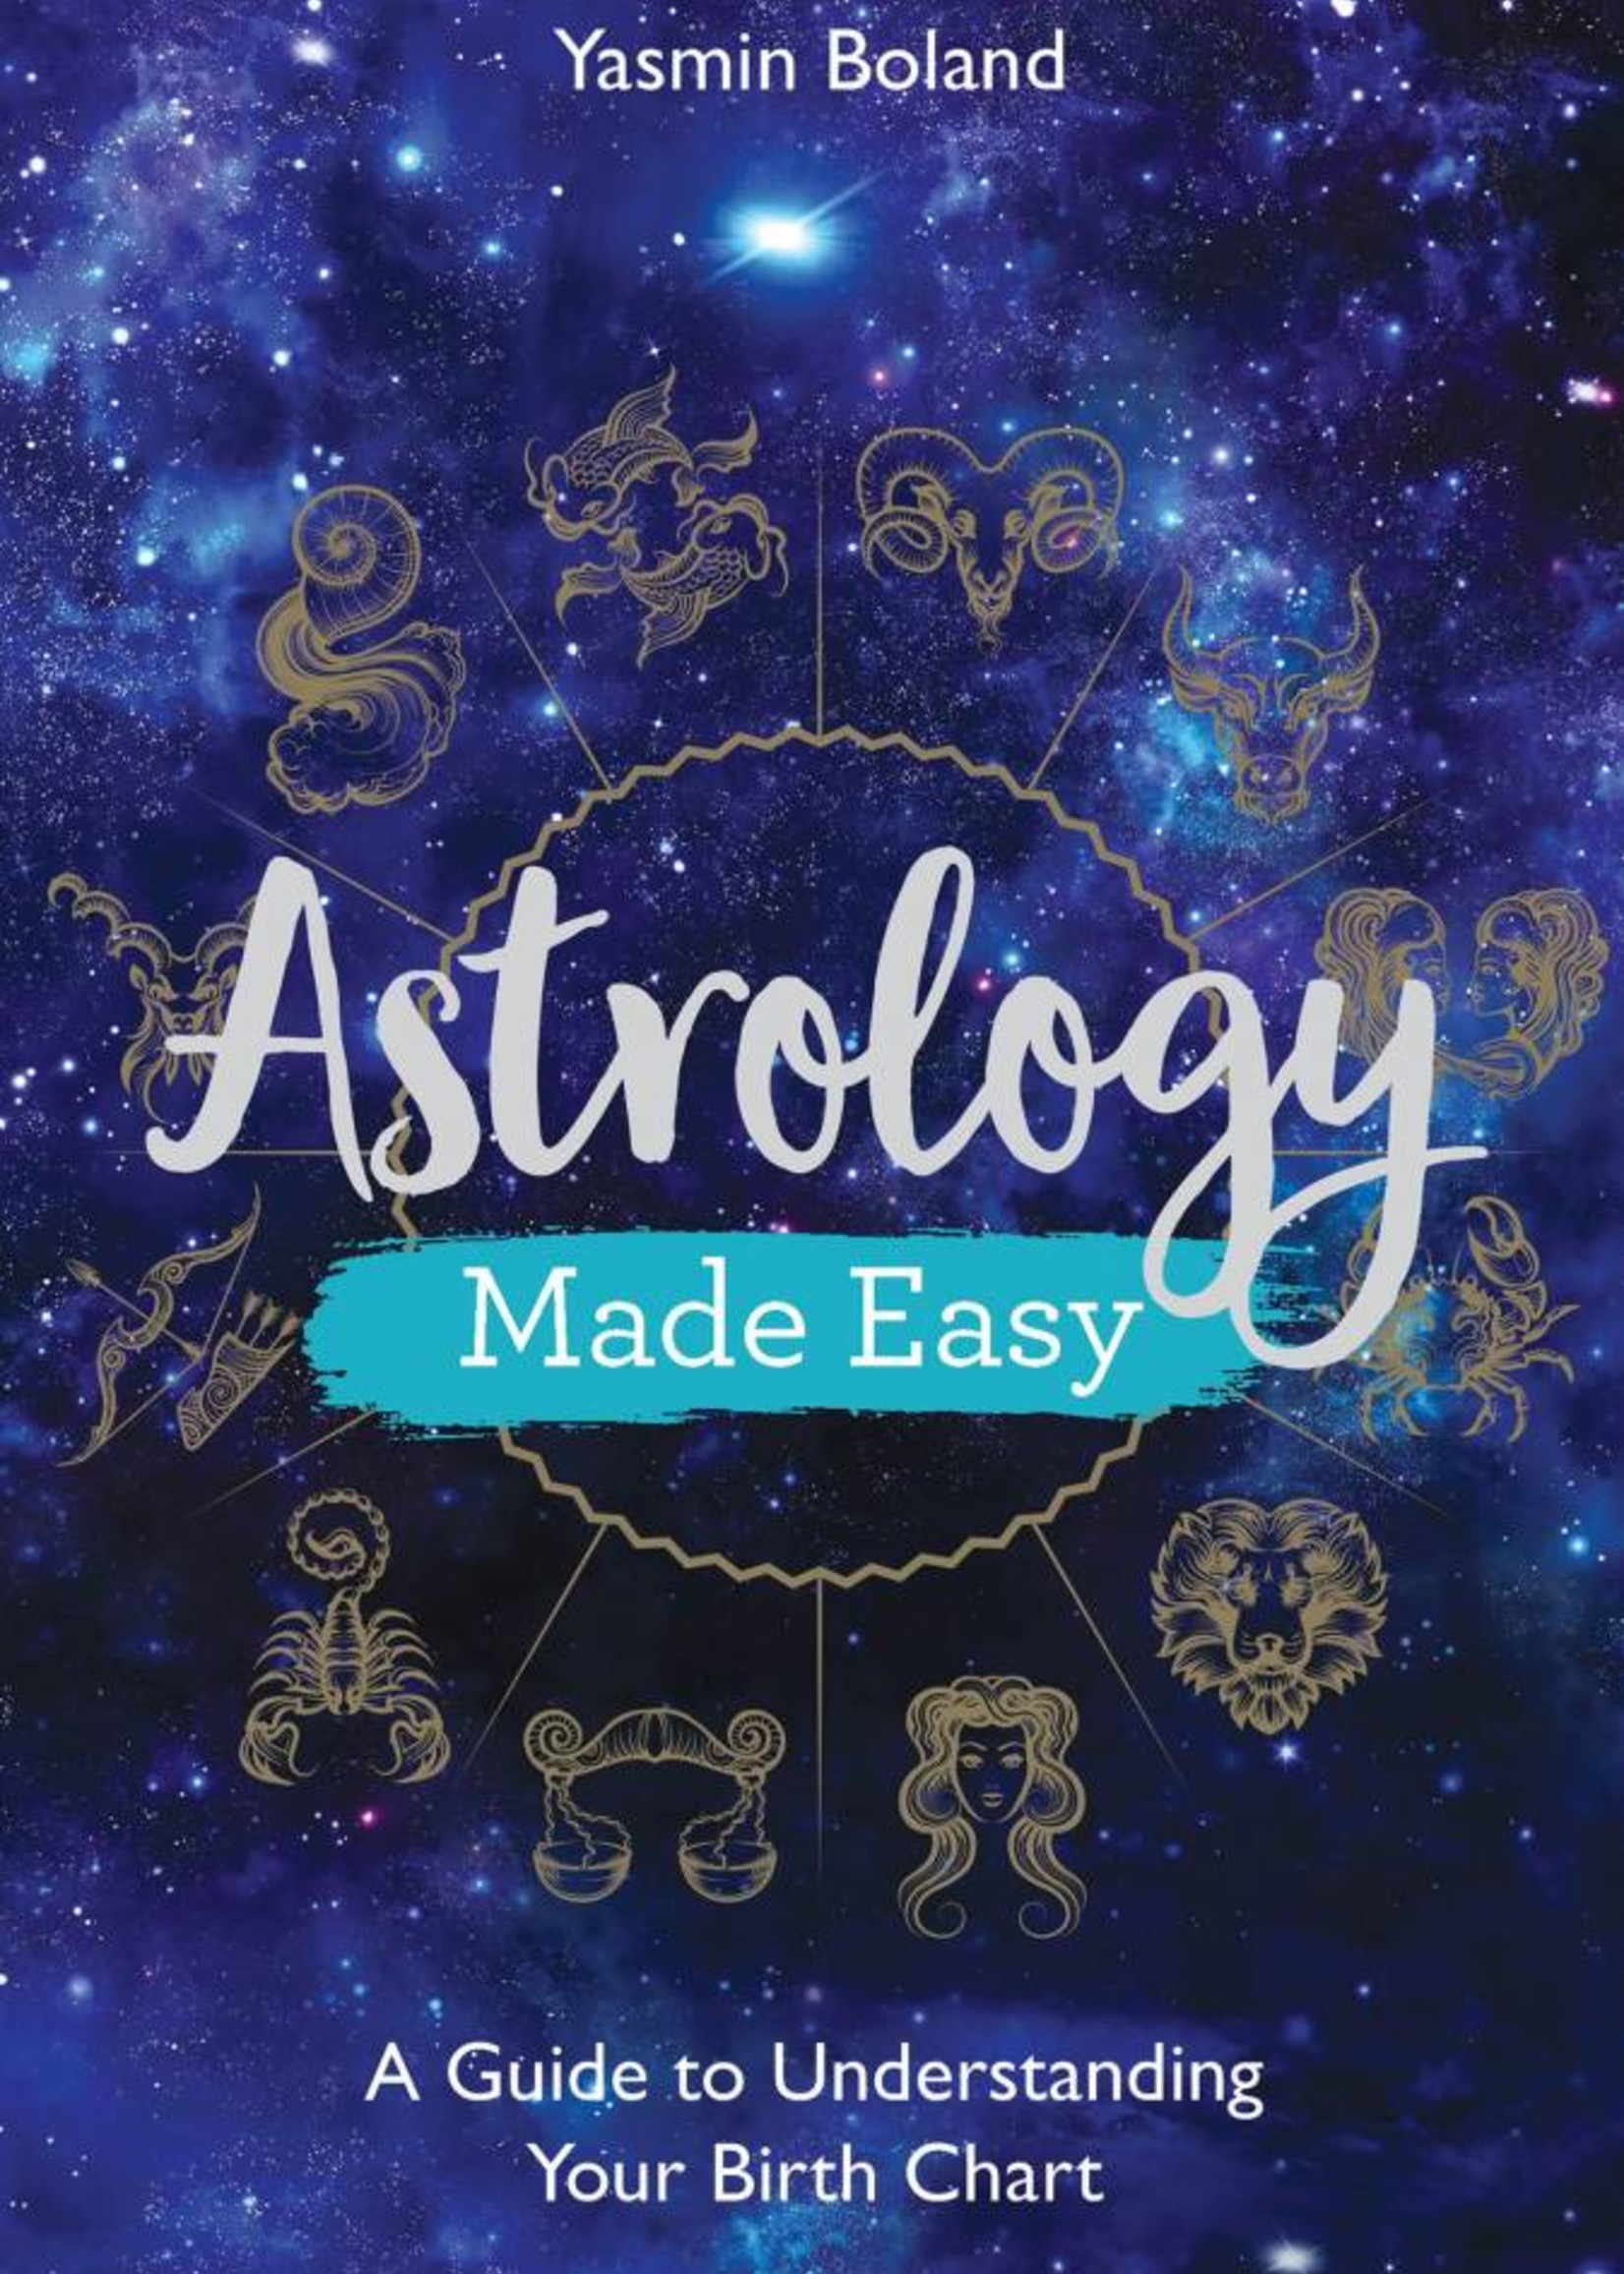 Astrology Made Easy | A Guide to Understanding Your Birth Chart